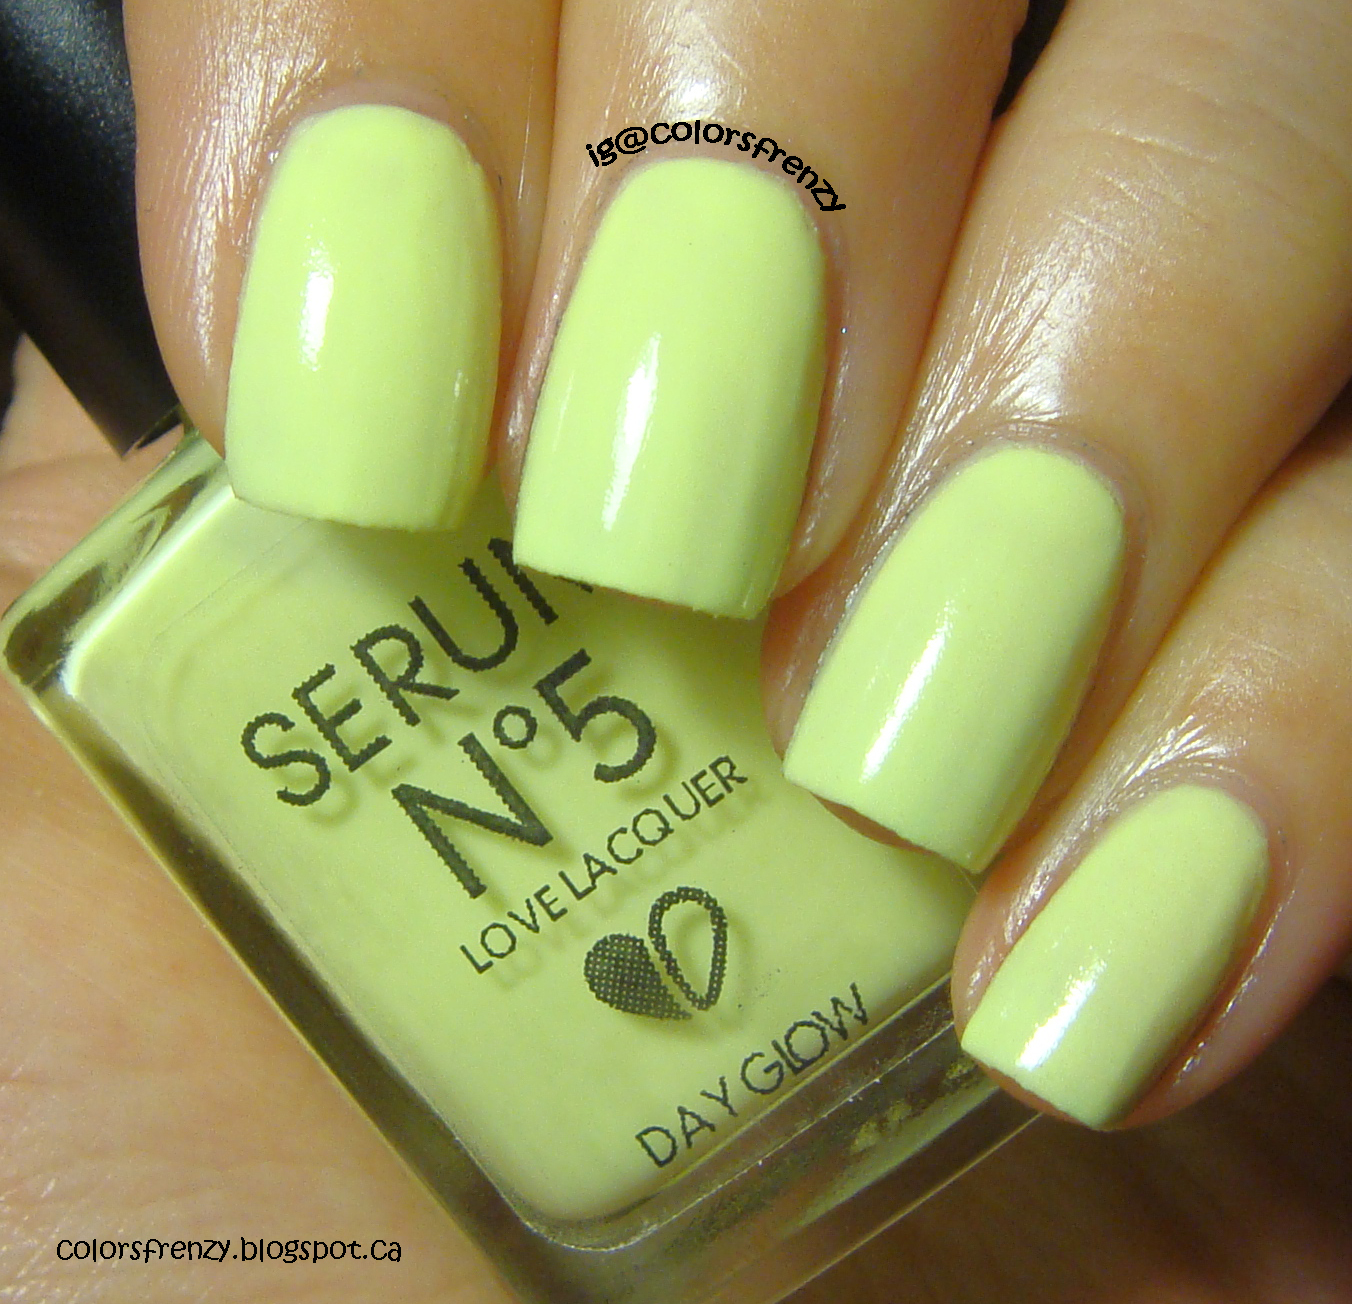 Colors Frenzy: Serum No.5 Day Glow And Cute Devil Stamp